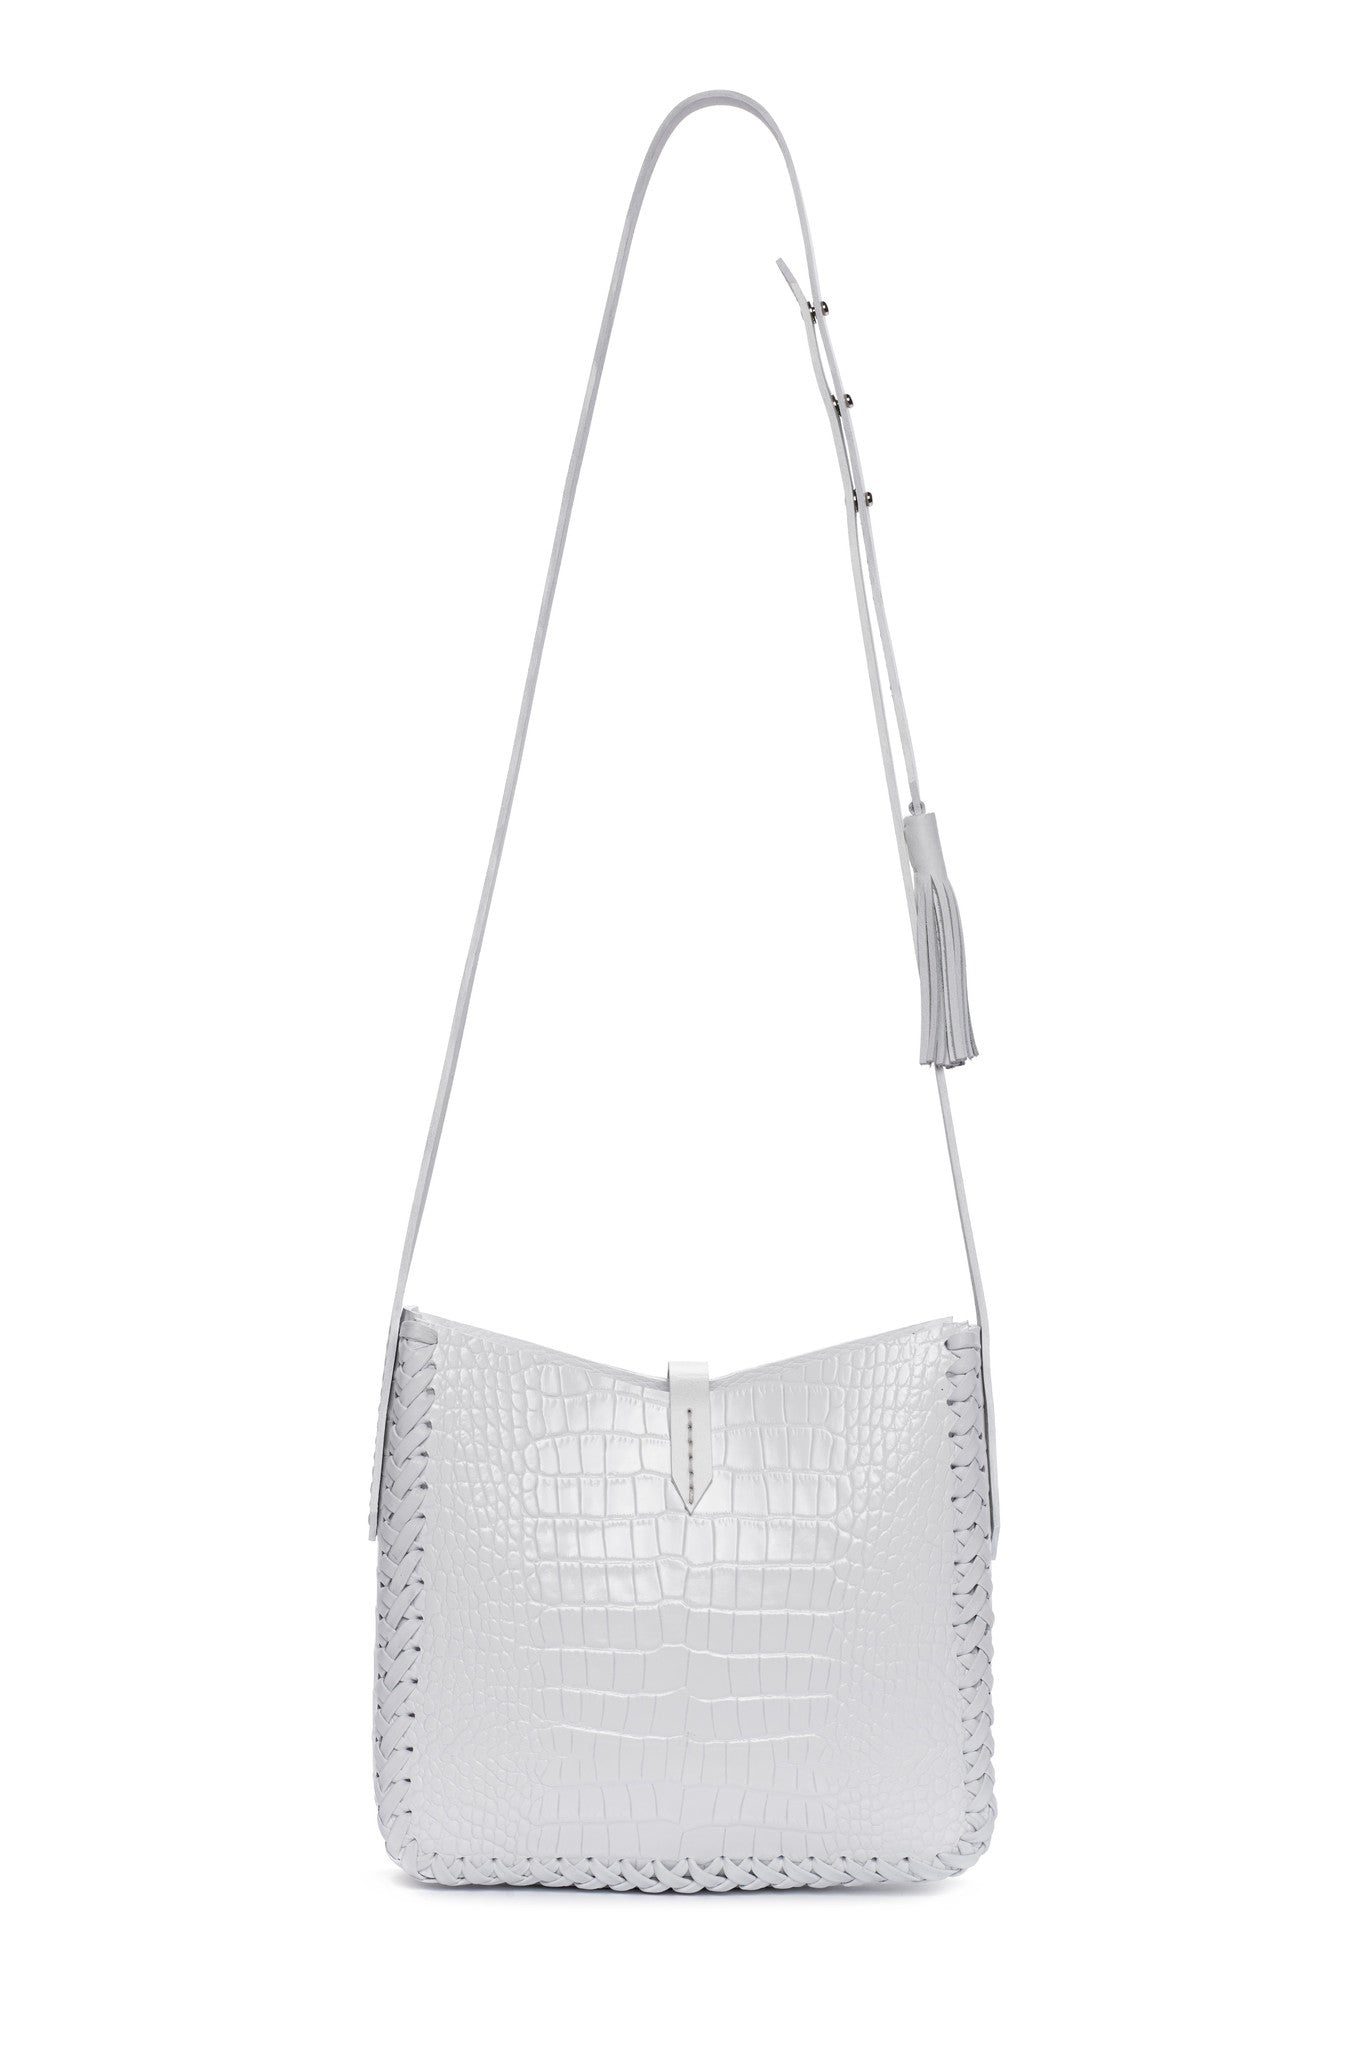 White Summer Embossed Croc Crocodile Alligator Cow Cowhide Leather Saddle Bag Wendy Nichol Handbag Purse Designer Handmade in NYC New York City black sued Whipstitch V Edge Open Square Structured Braided Adjustable Strap Fringe Tassels Tassel High Quality Leather